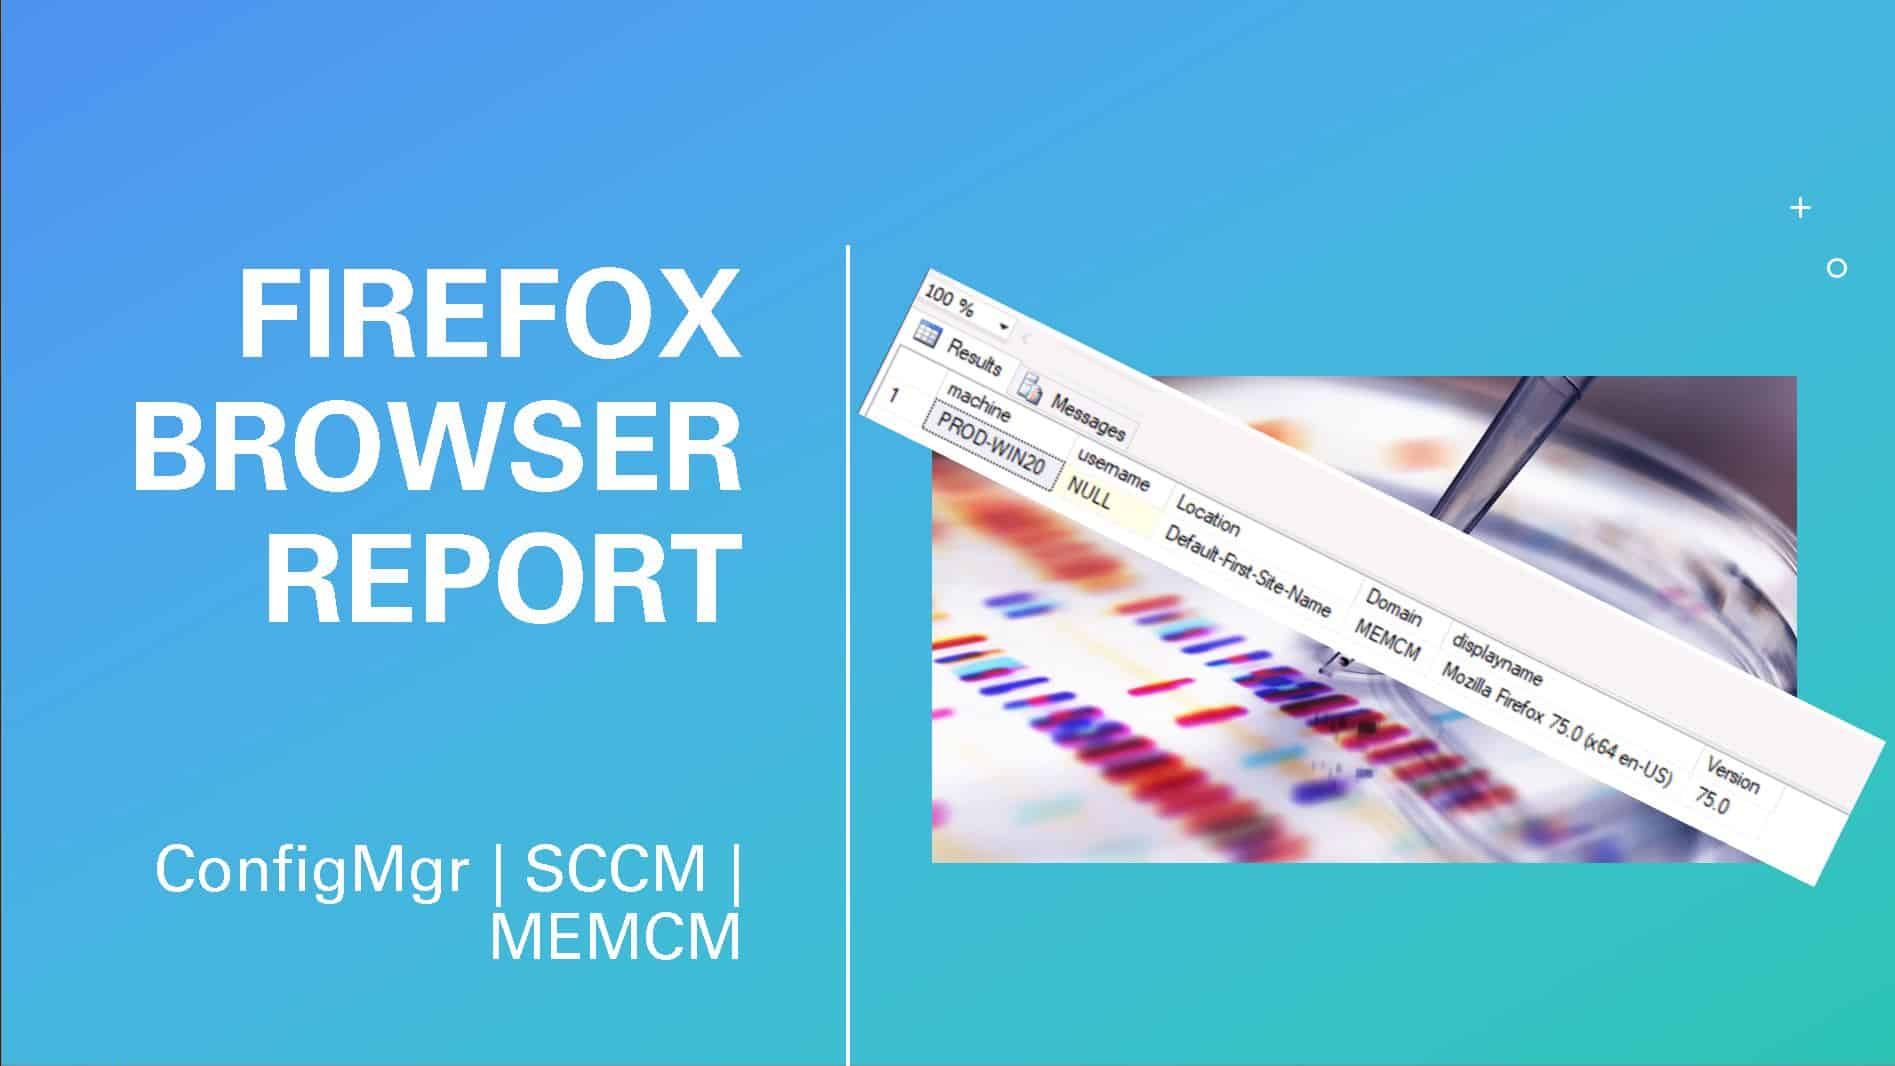 ConfigMgr Custom Report for Firefox Browser